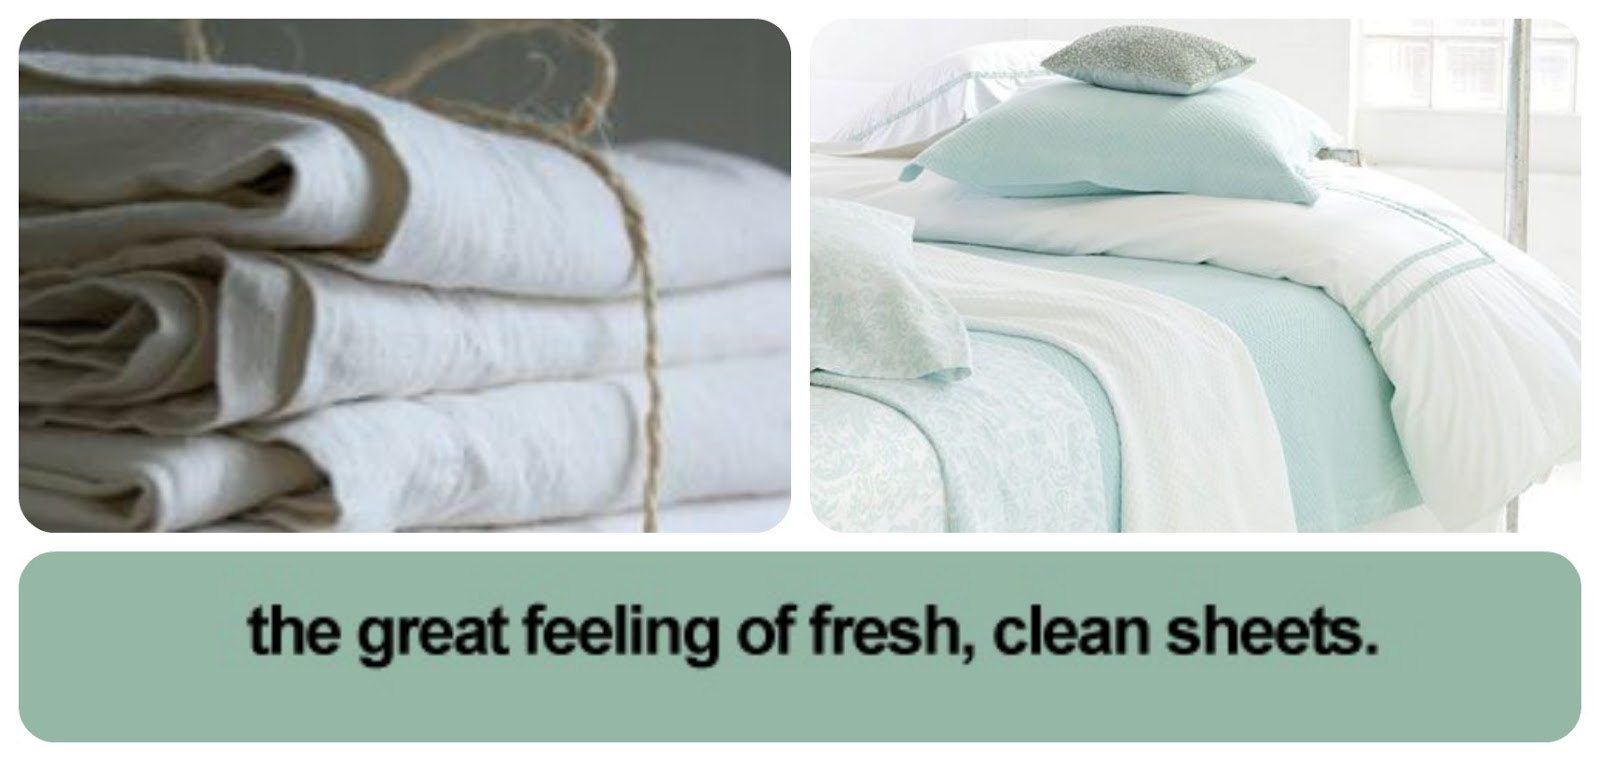 Me gustan las sábanas limpias / The great feeling of fresh, clean sheets